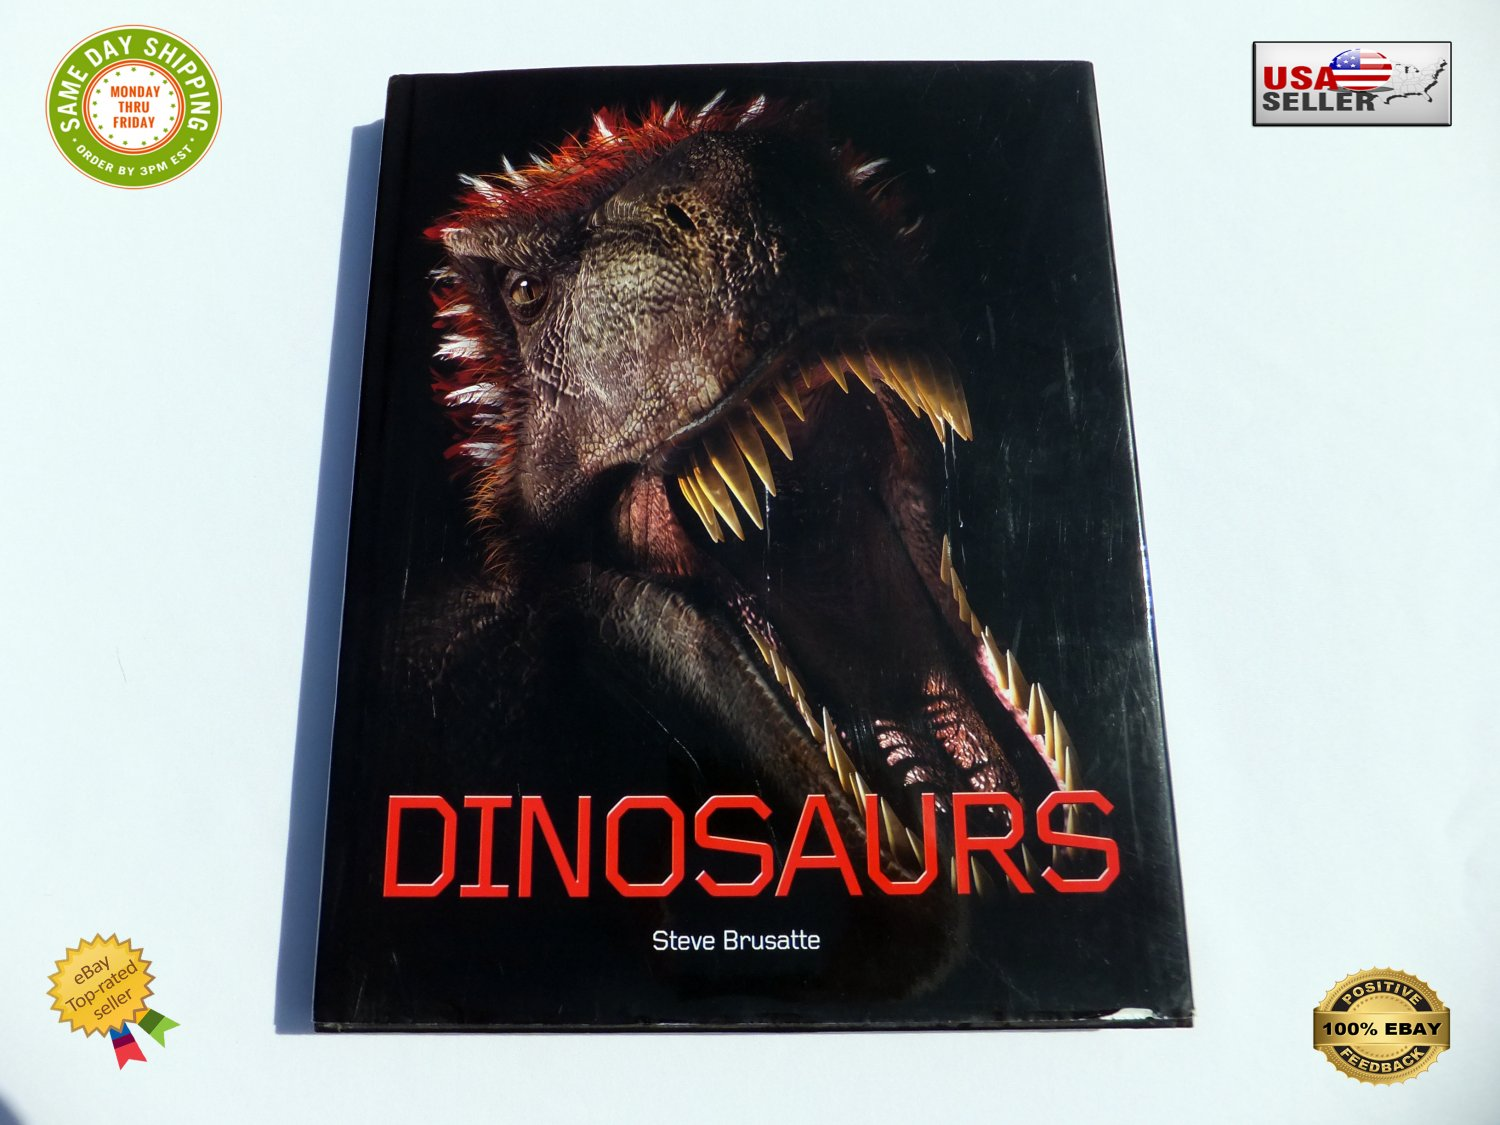 � Dinosaurs By Steve Brusatte Very Large Book Quercus 170 Species - Hardcover �